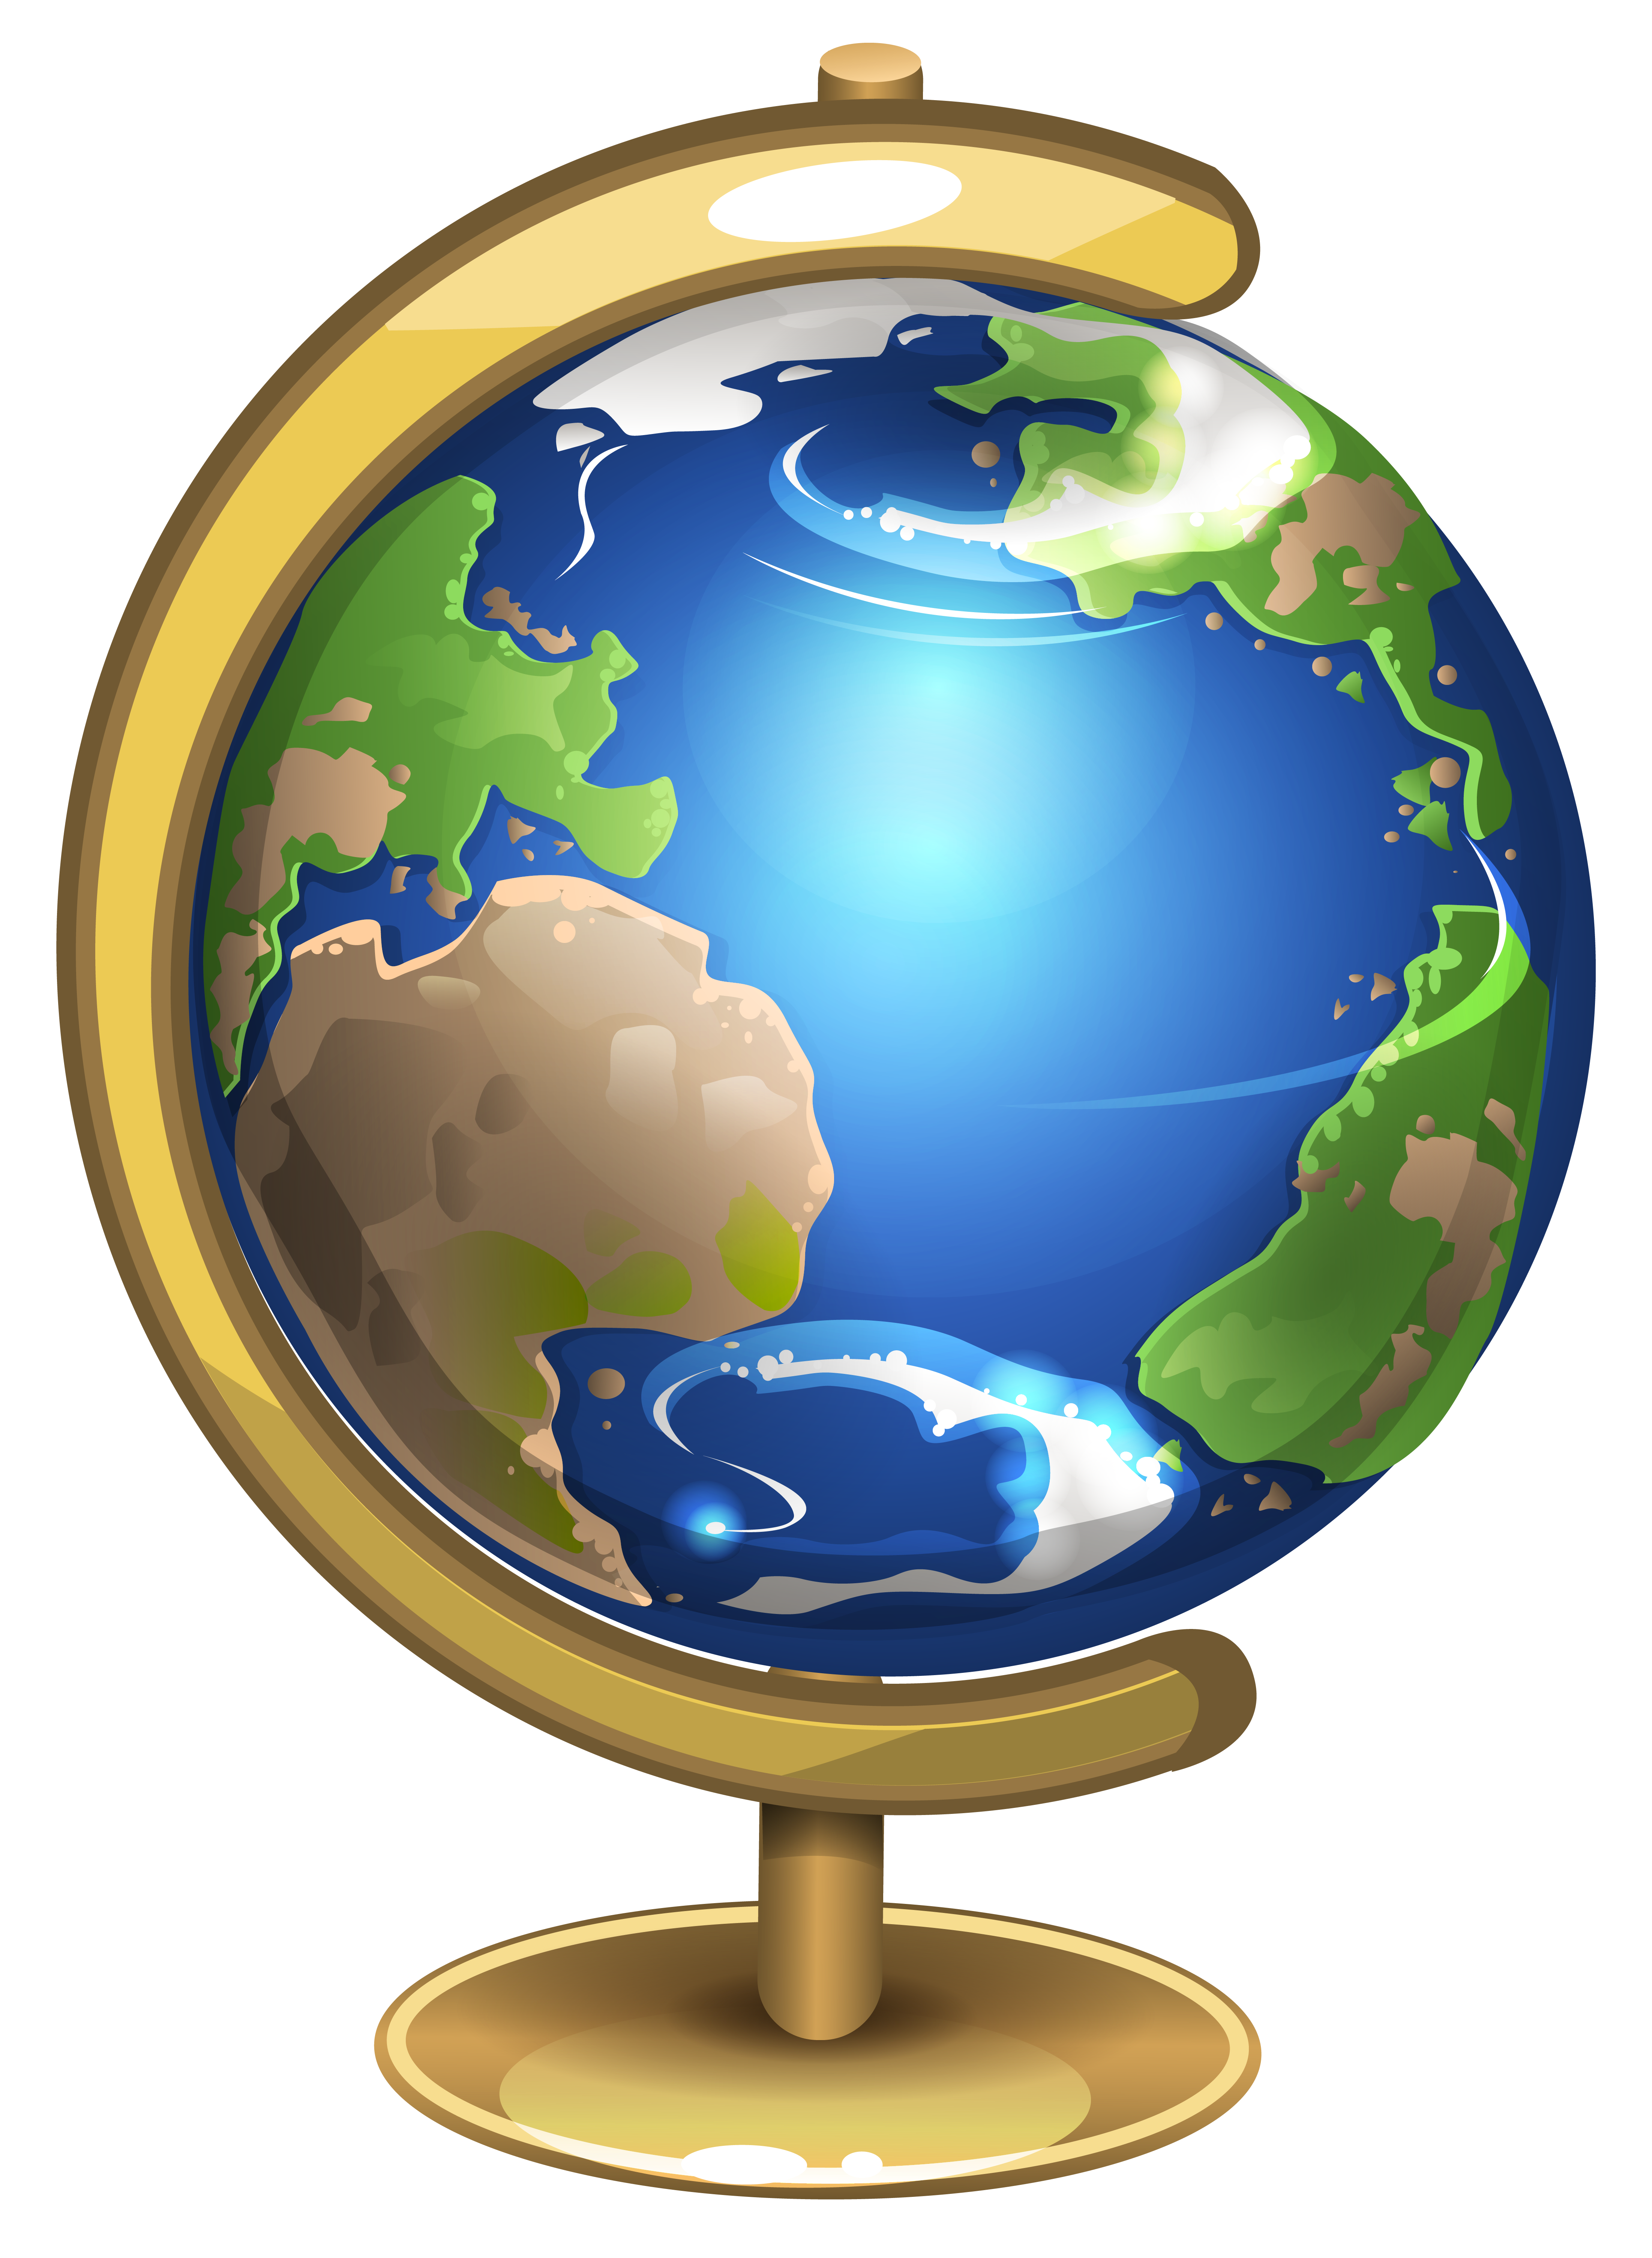 Globe clipart. School png picture gallery